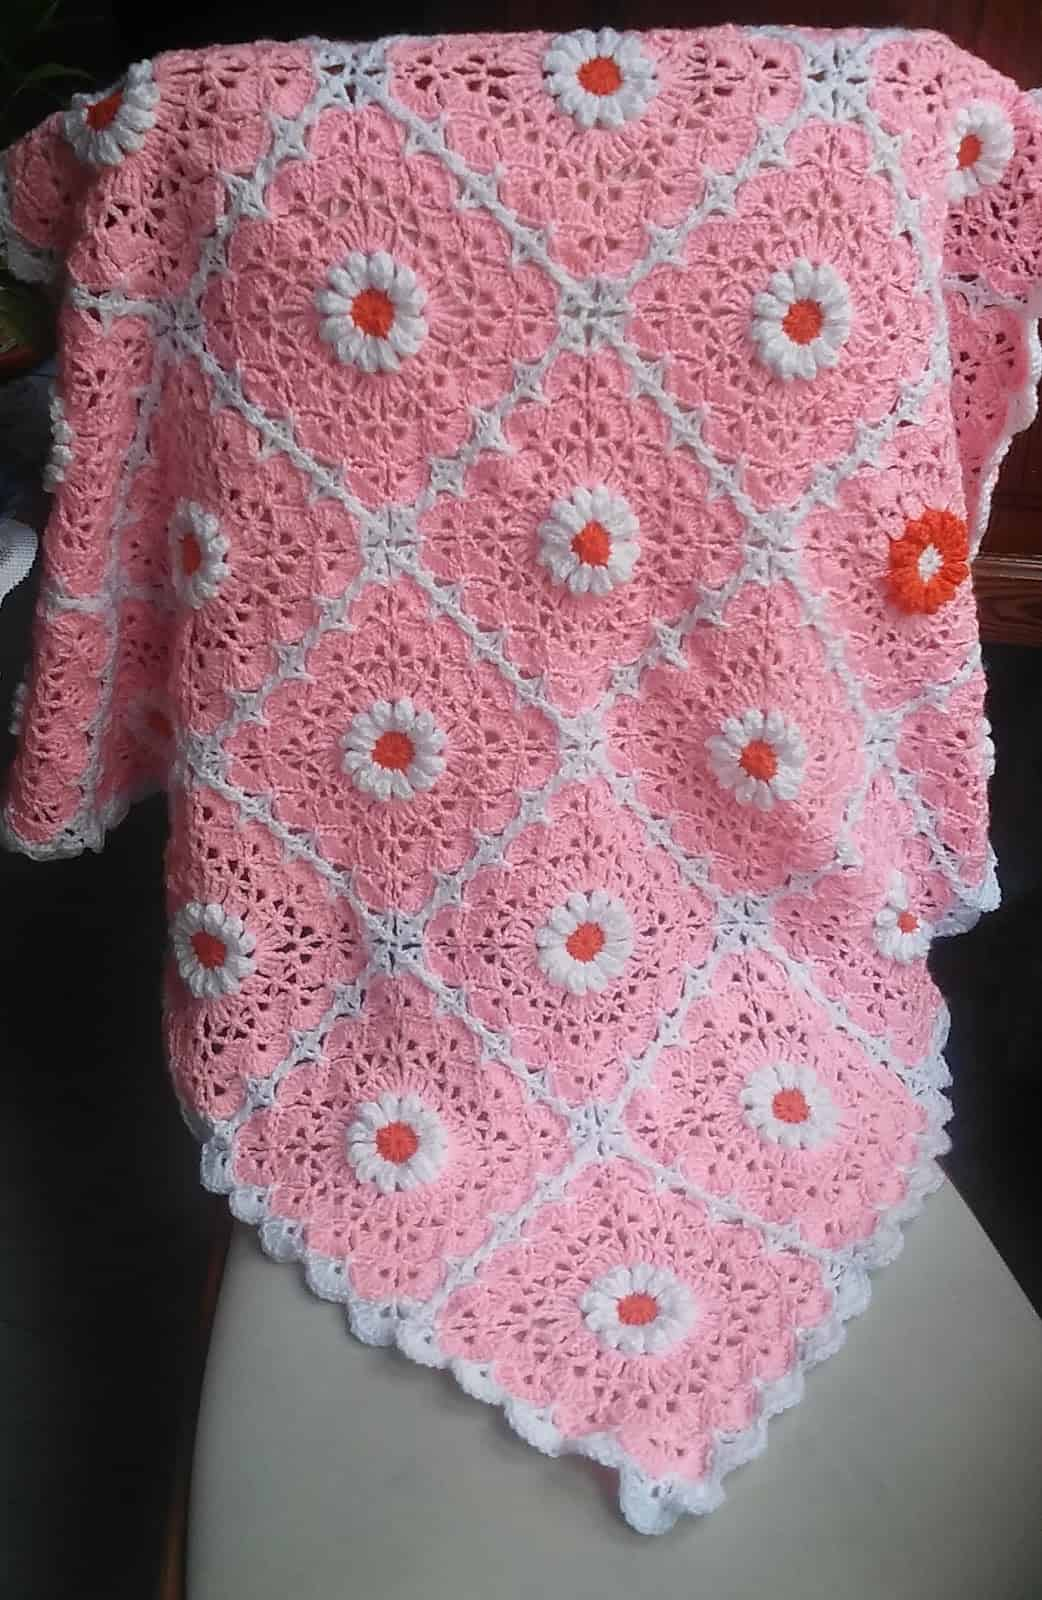 Pink daisy crocheted blanket